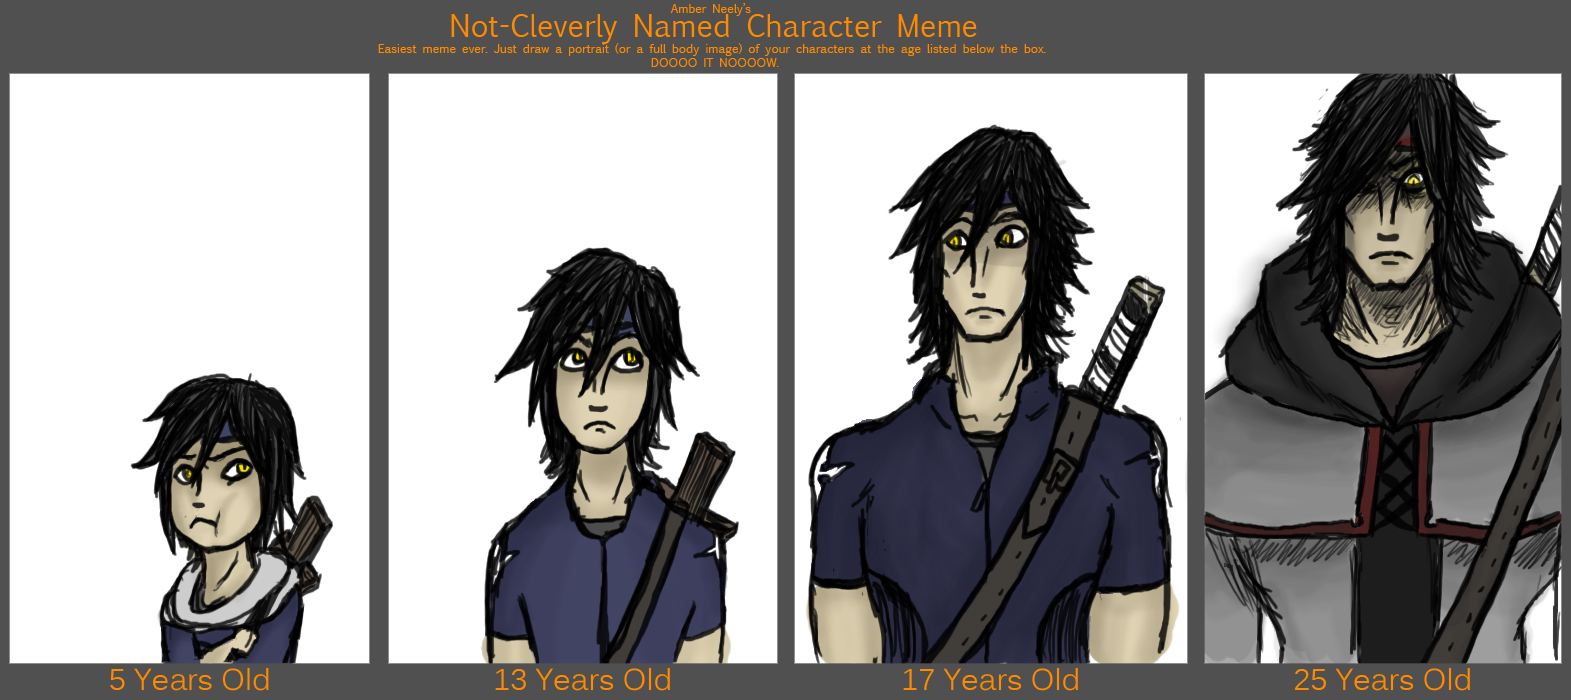 Anime Characters Age : Character age meme by hazu haze on deviantart